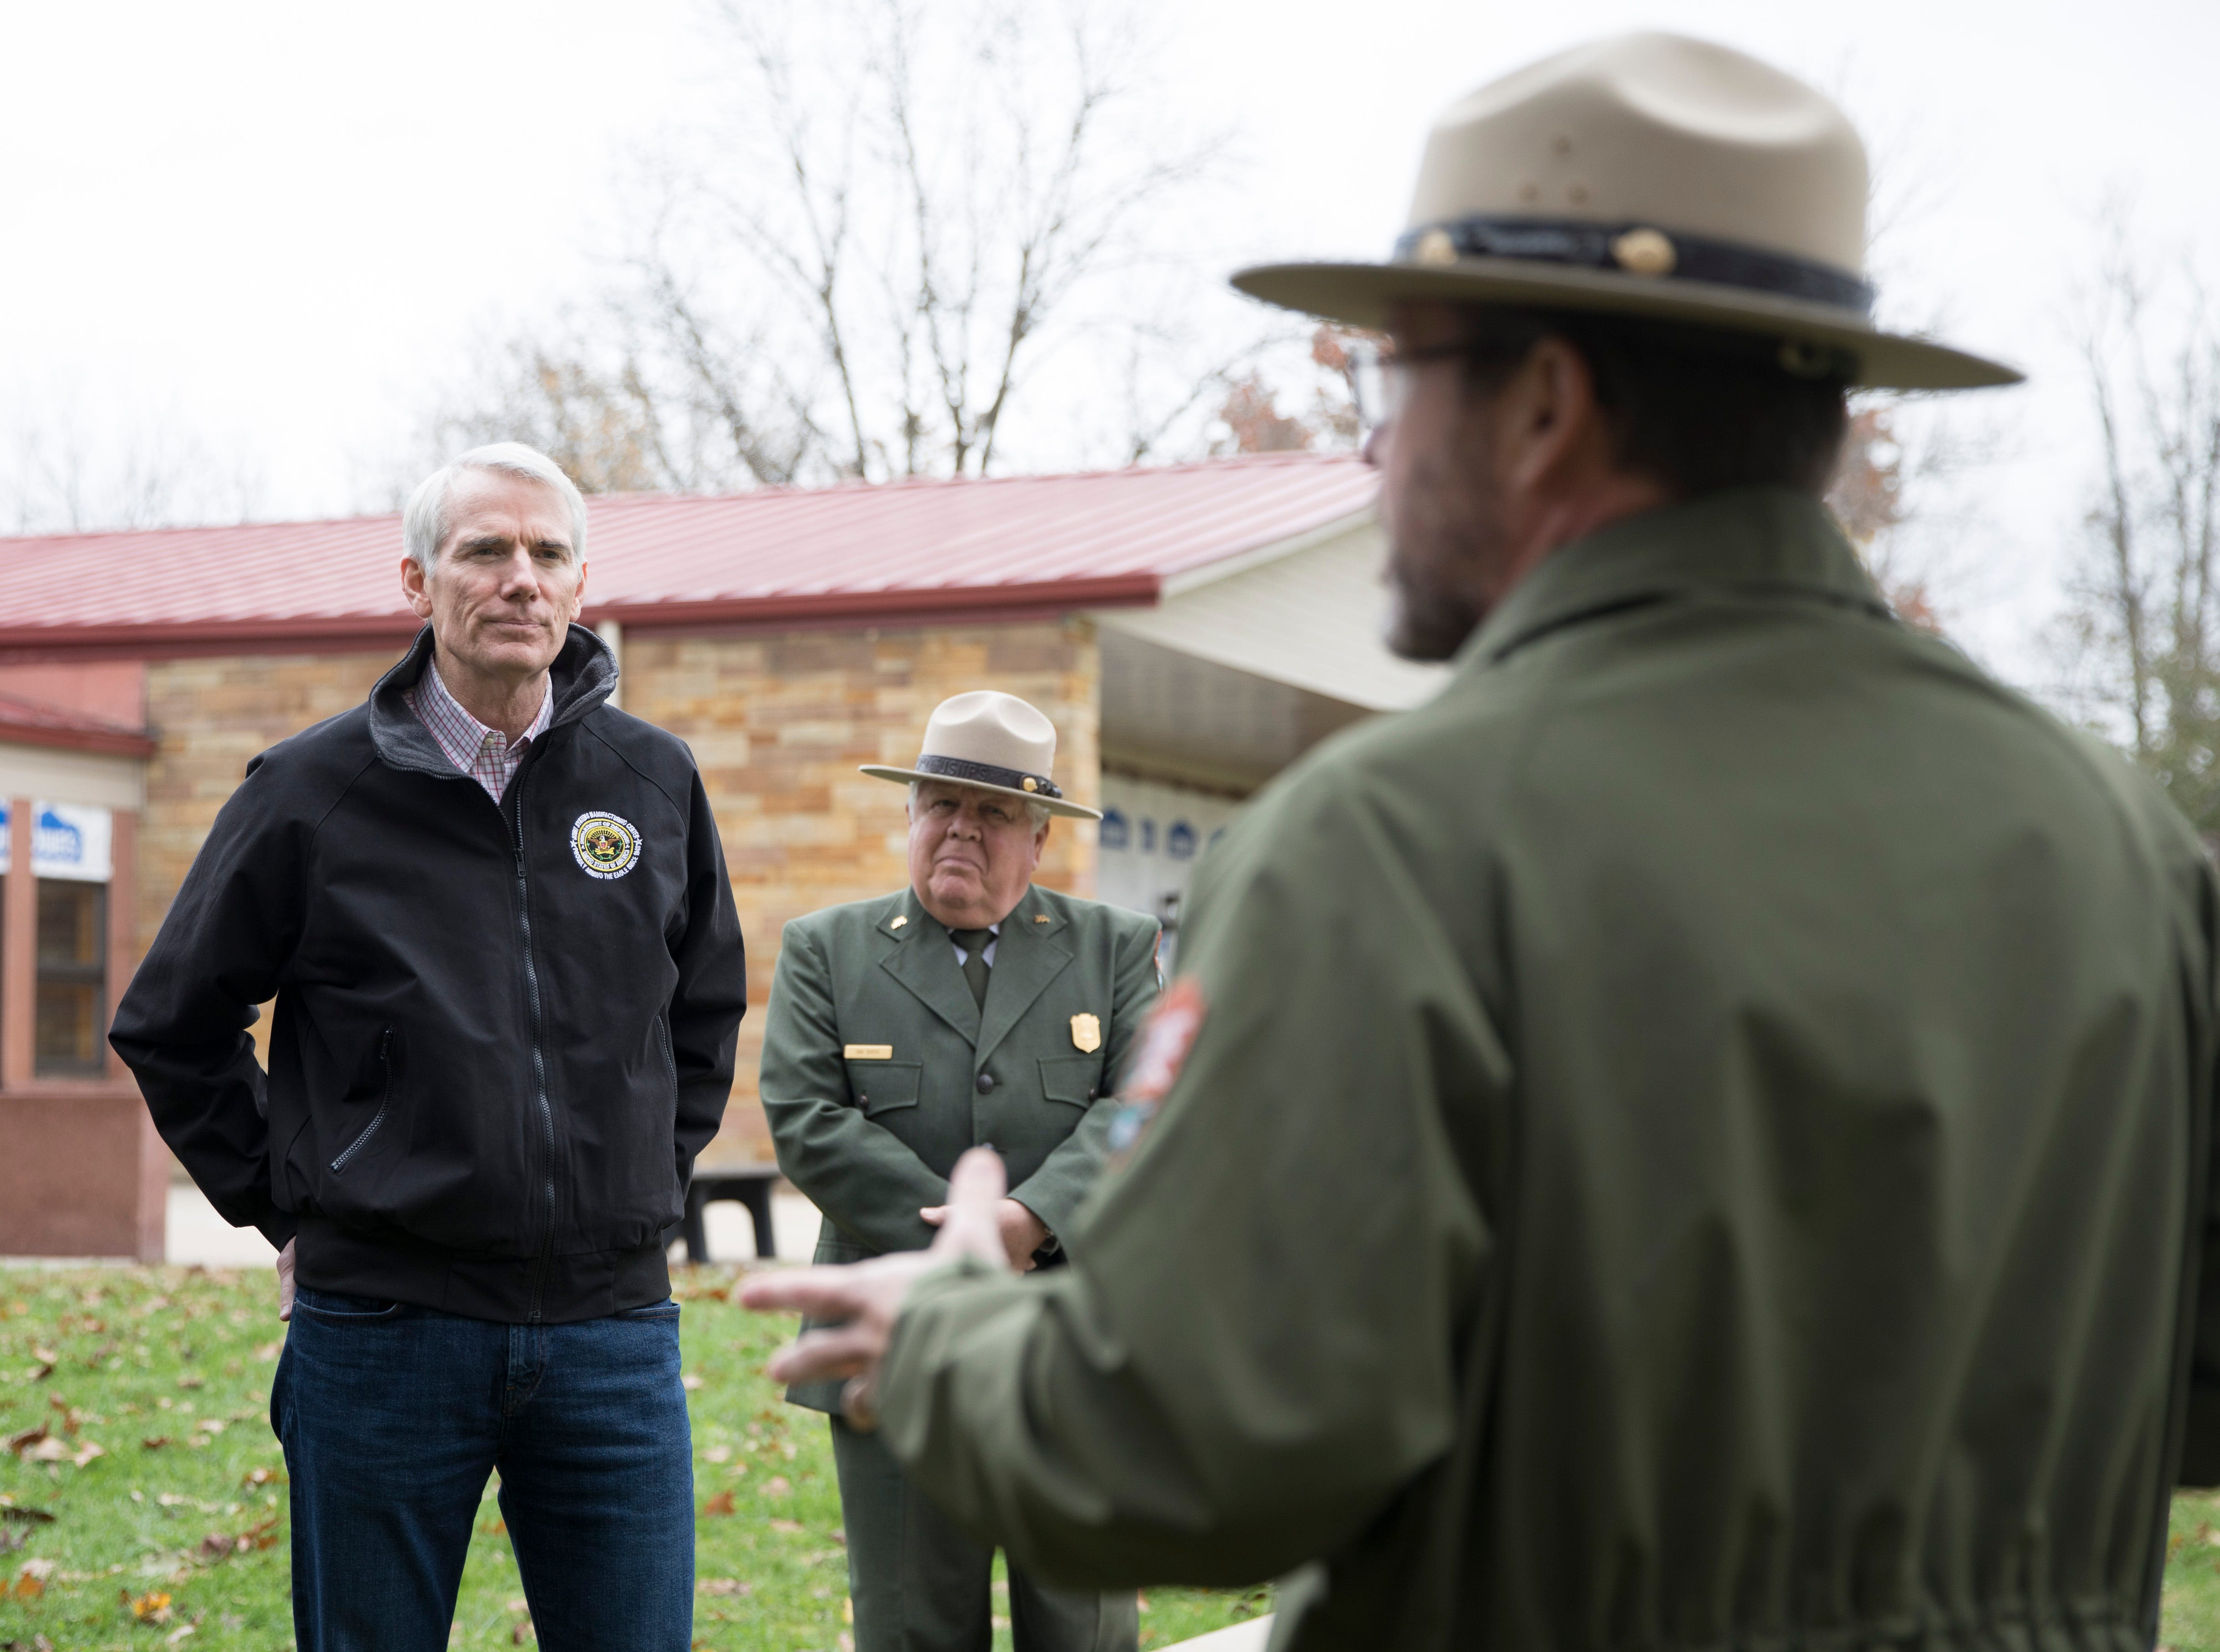 On Friday, Hopewell Culture National Historical Park superintendent Karen Dorn led U.S. Sen. Rob Portman, U.S. Rep. Brad Wenstrup and National Park Service Deputy Director P. Daniel Smith on a tour of the park to show some of its maintenance needs.